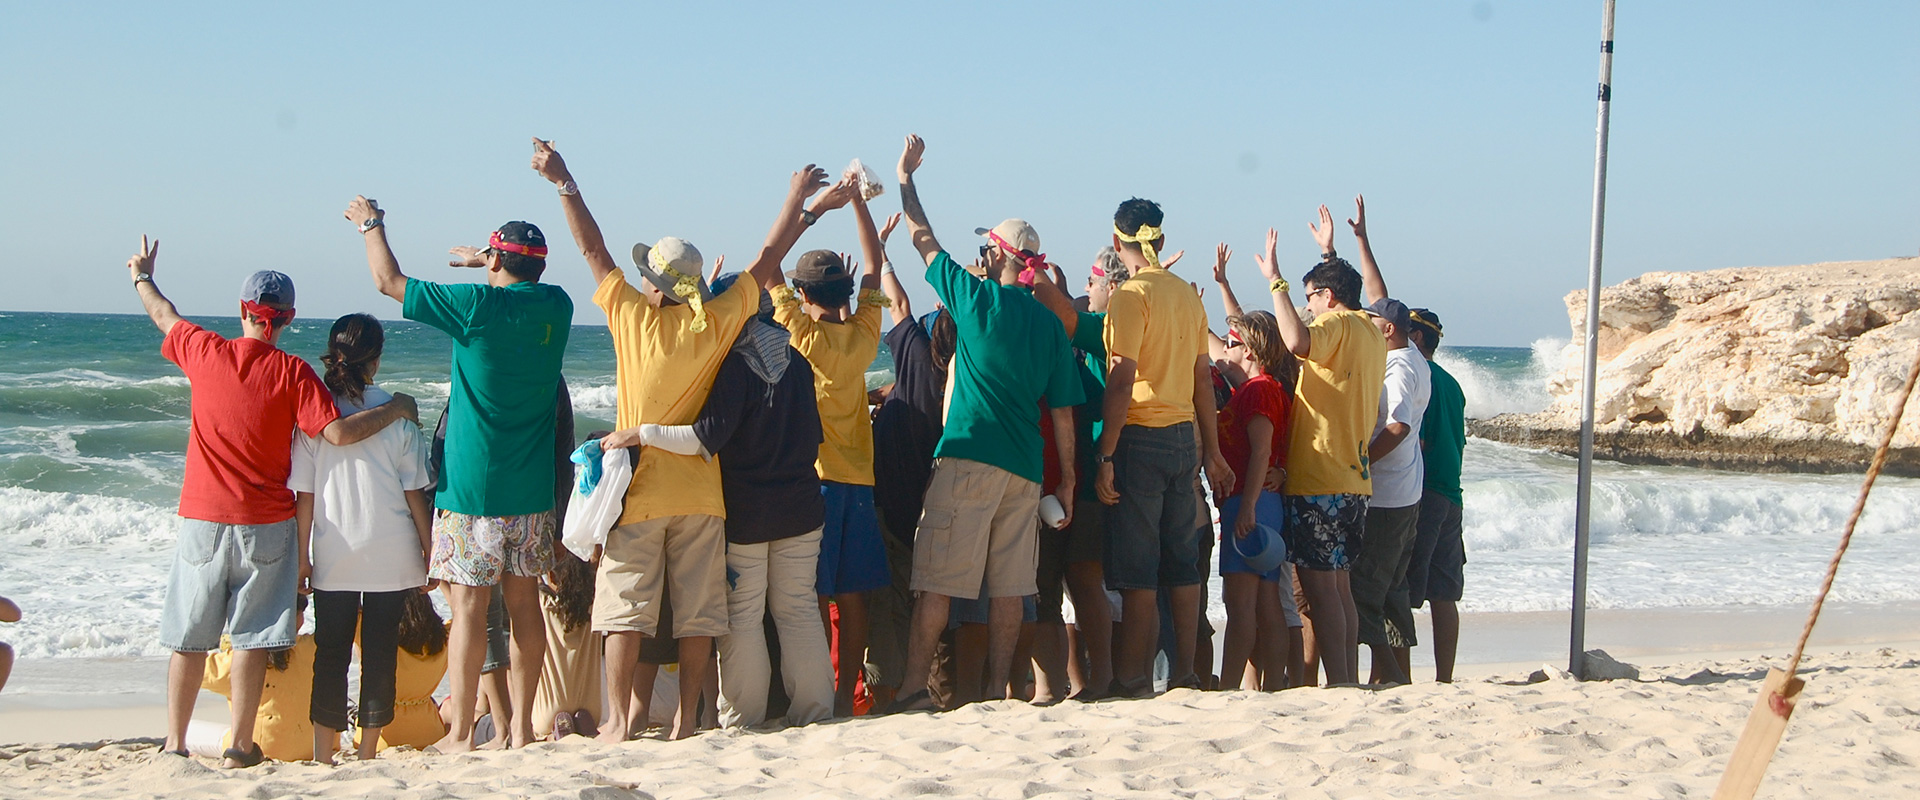 EVENTS & TEAM BUILDING